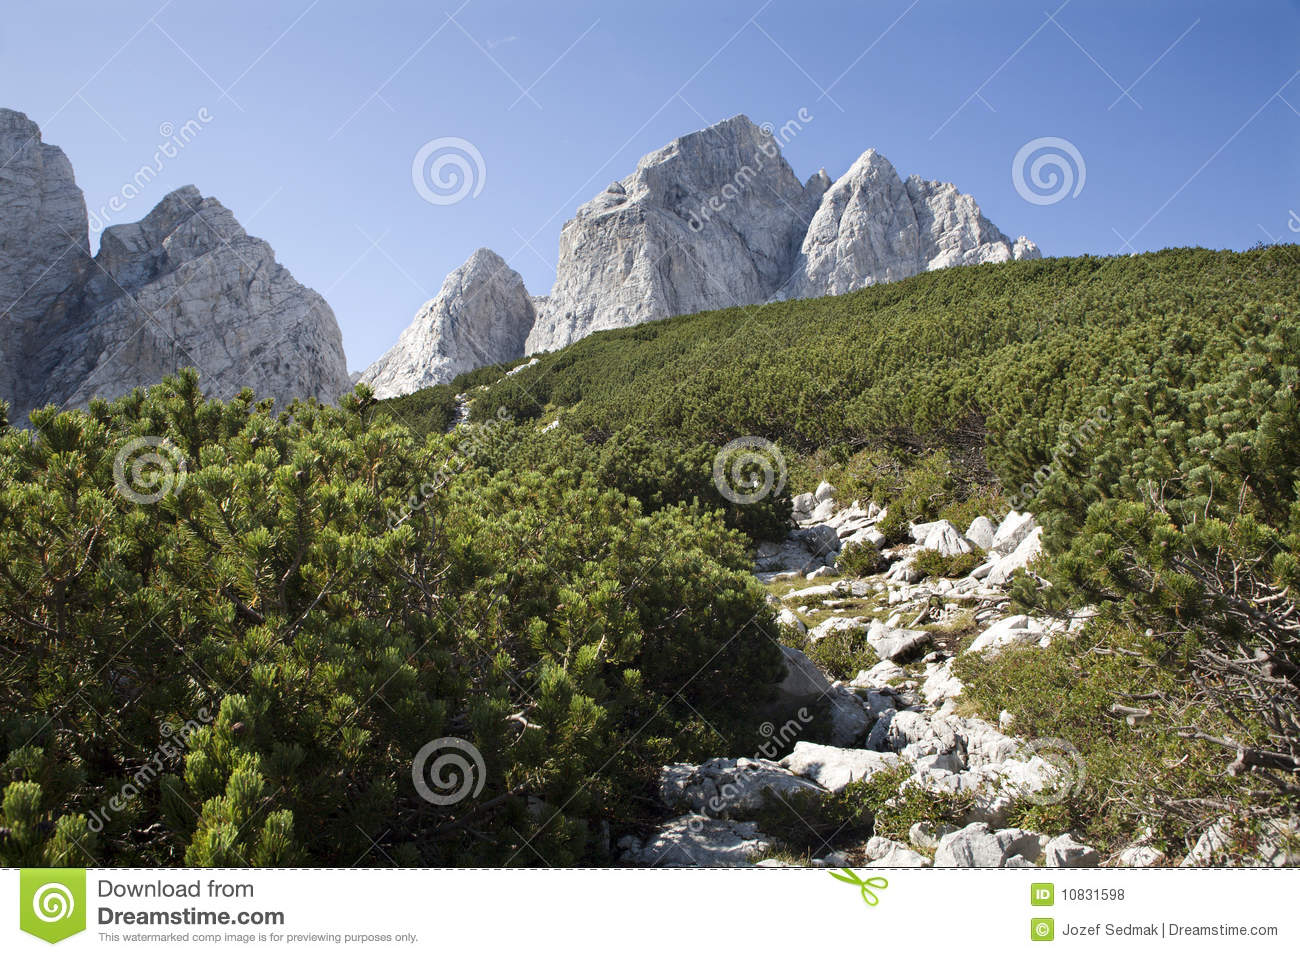 Alp Peak http://www.dreamstime.com/royalty-free-stock-photos-julian-alps-jalovec-peak-image10831598